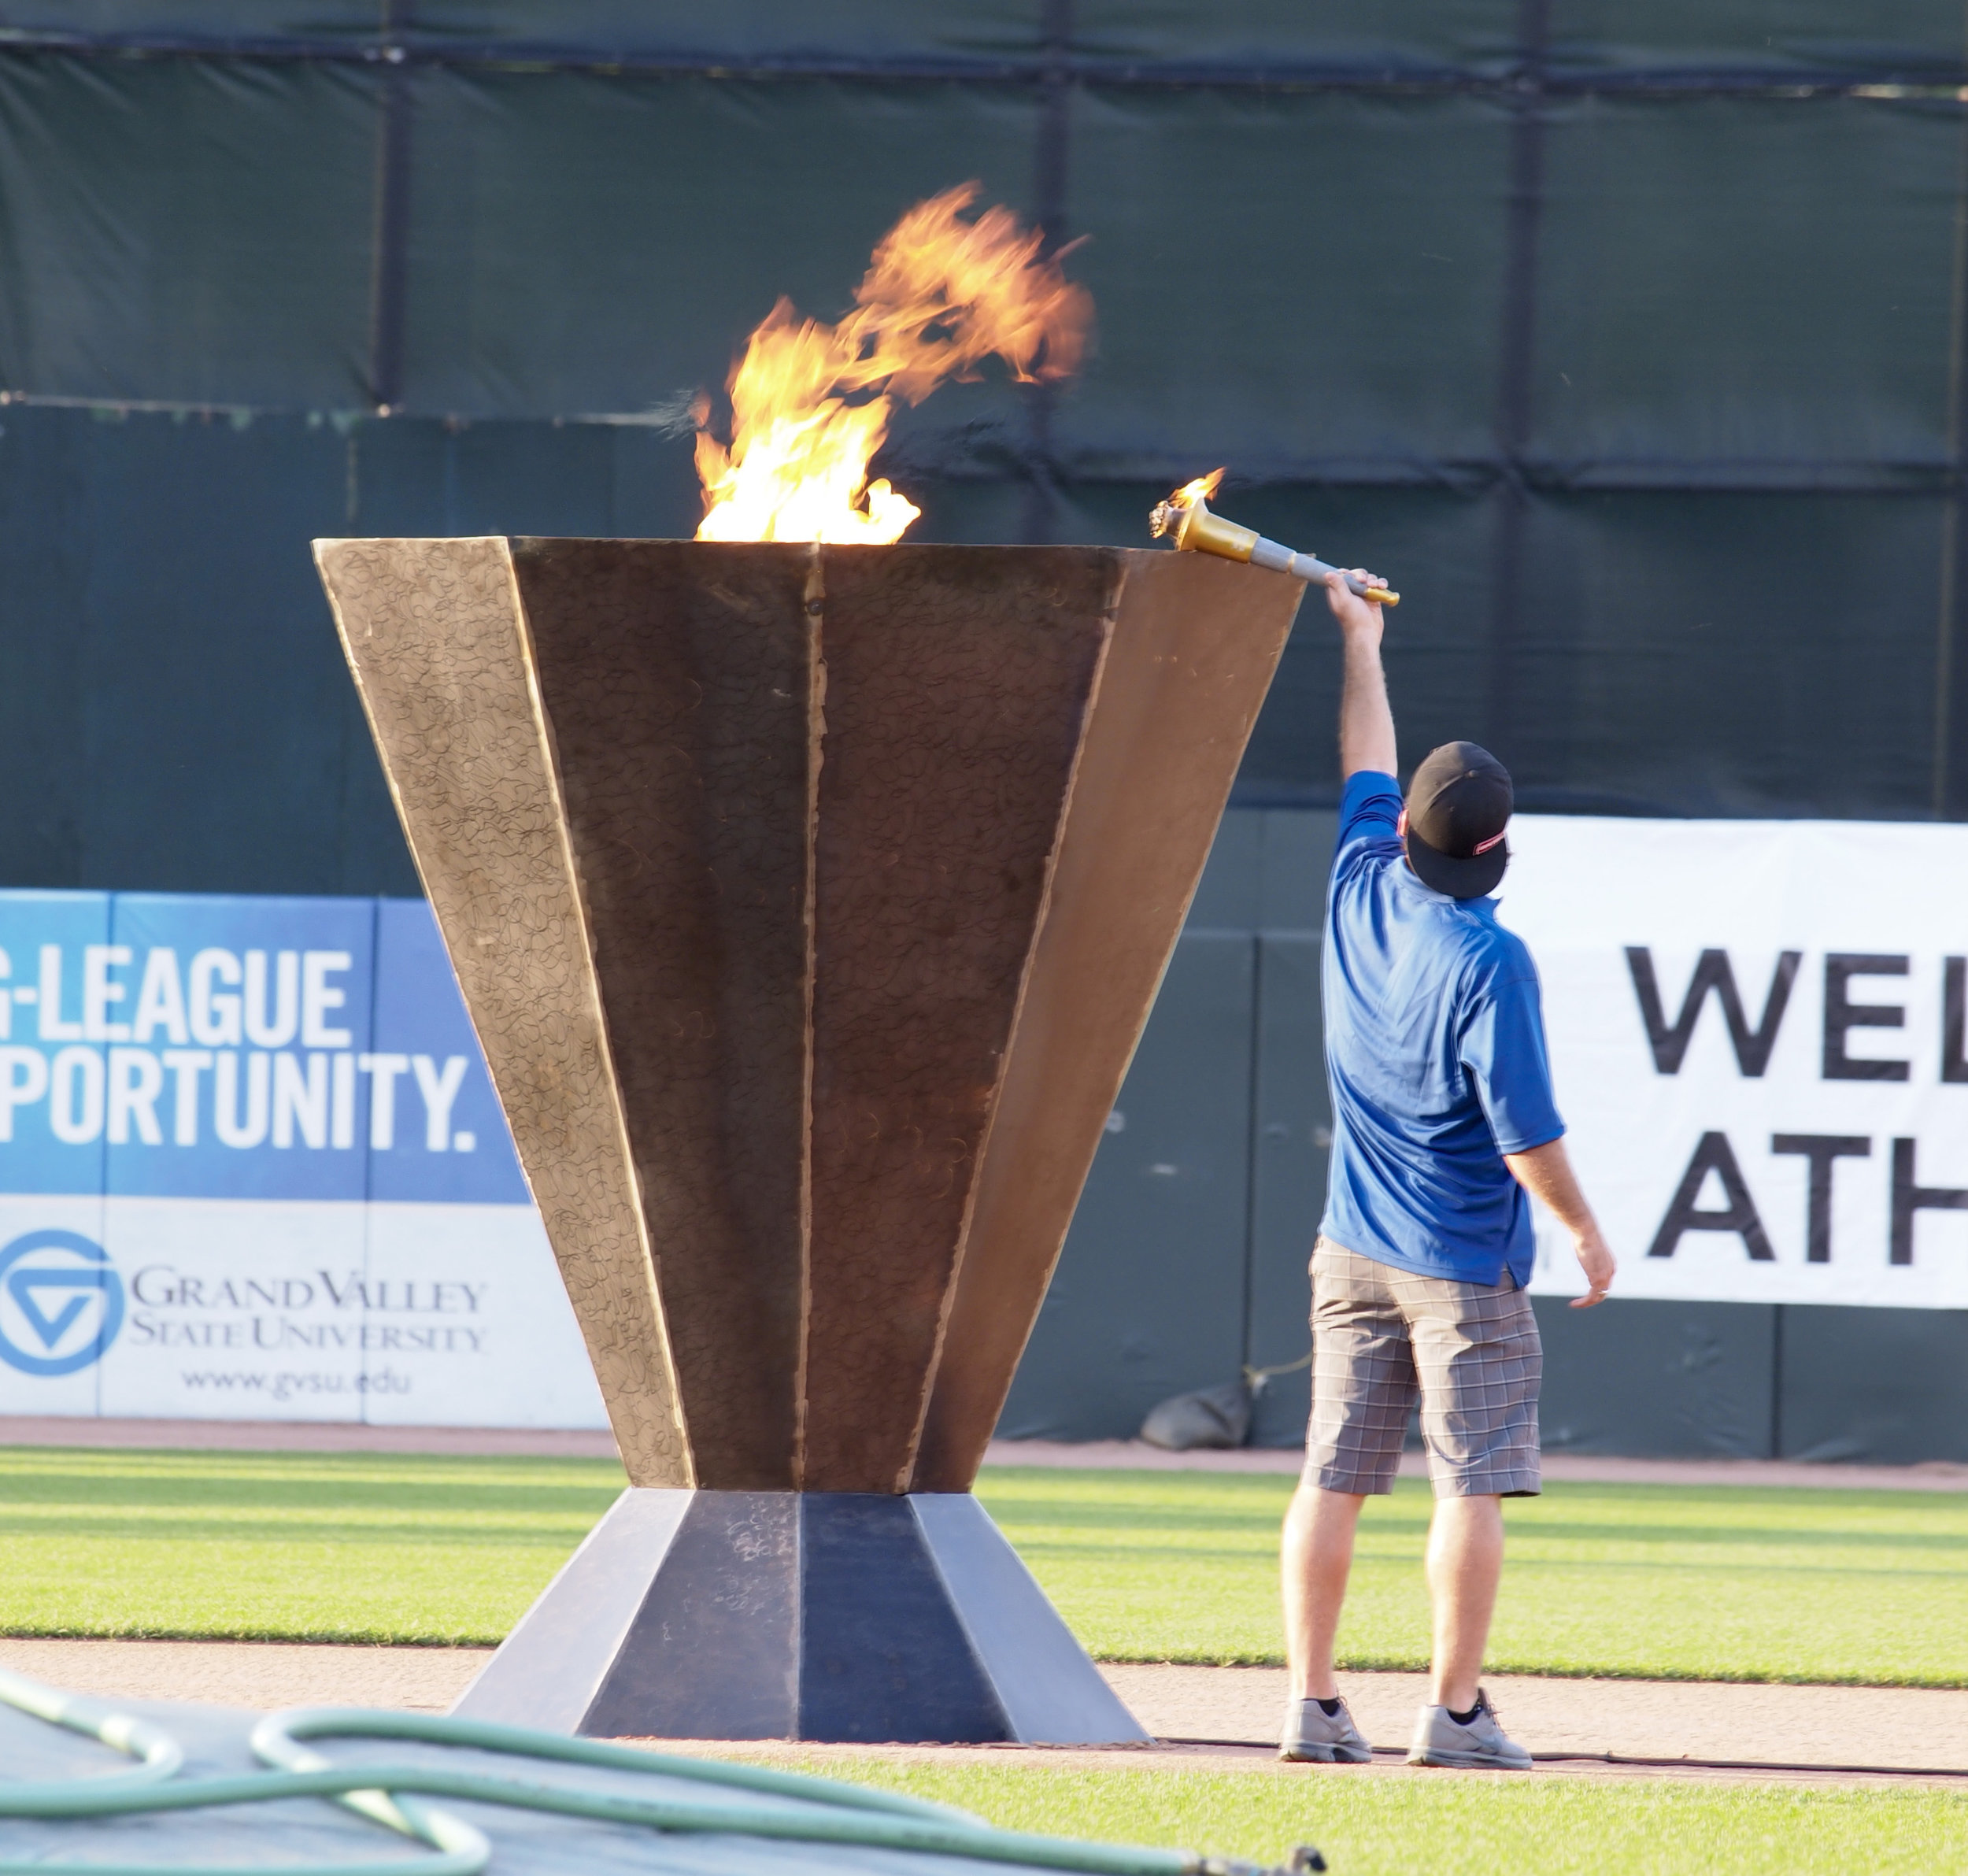 2019 Opening Ceremony - Join us June 21, 2019 at Fifth Third Ballpark. We will be celebrating the 10th Anniversary of the Meijer State Games of Michigan.Athletes will have the opportunity to represent their sport in the athlete parade. Click here for more information on Opening Ceremony.